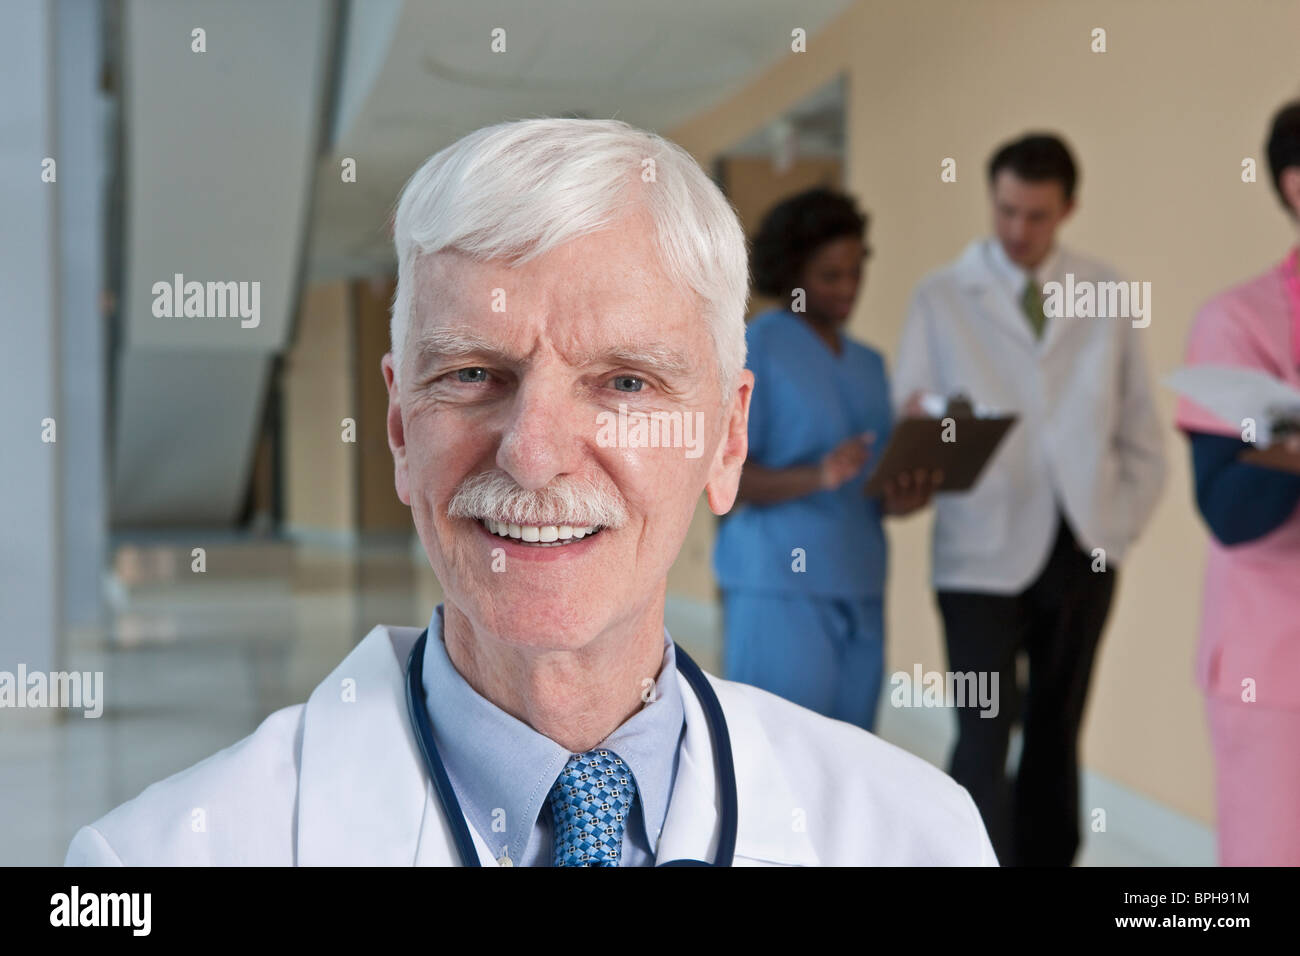 Doctor smiling with his colleagues in the background - Stock Image